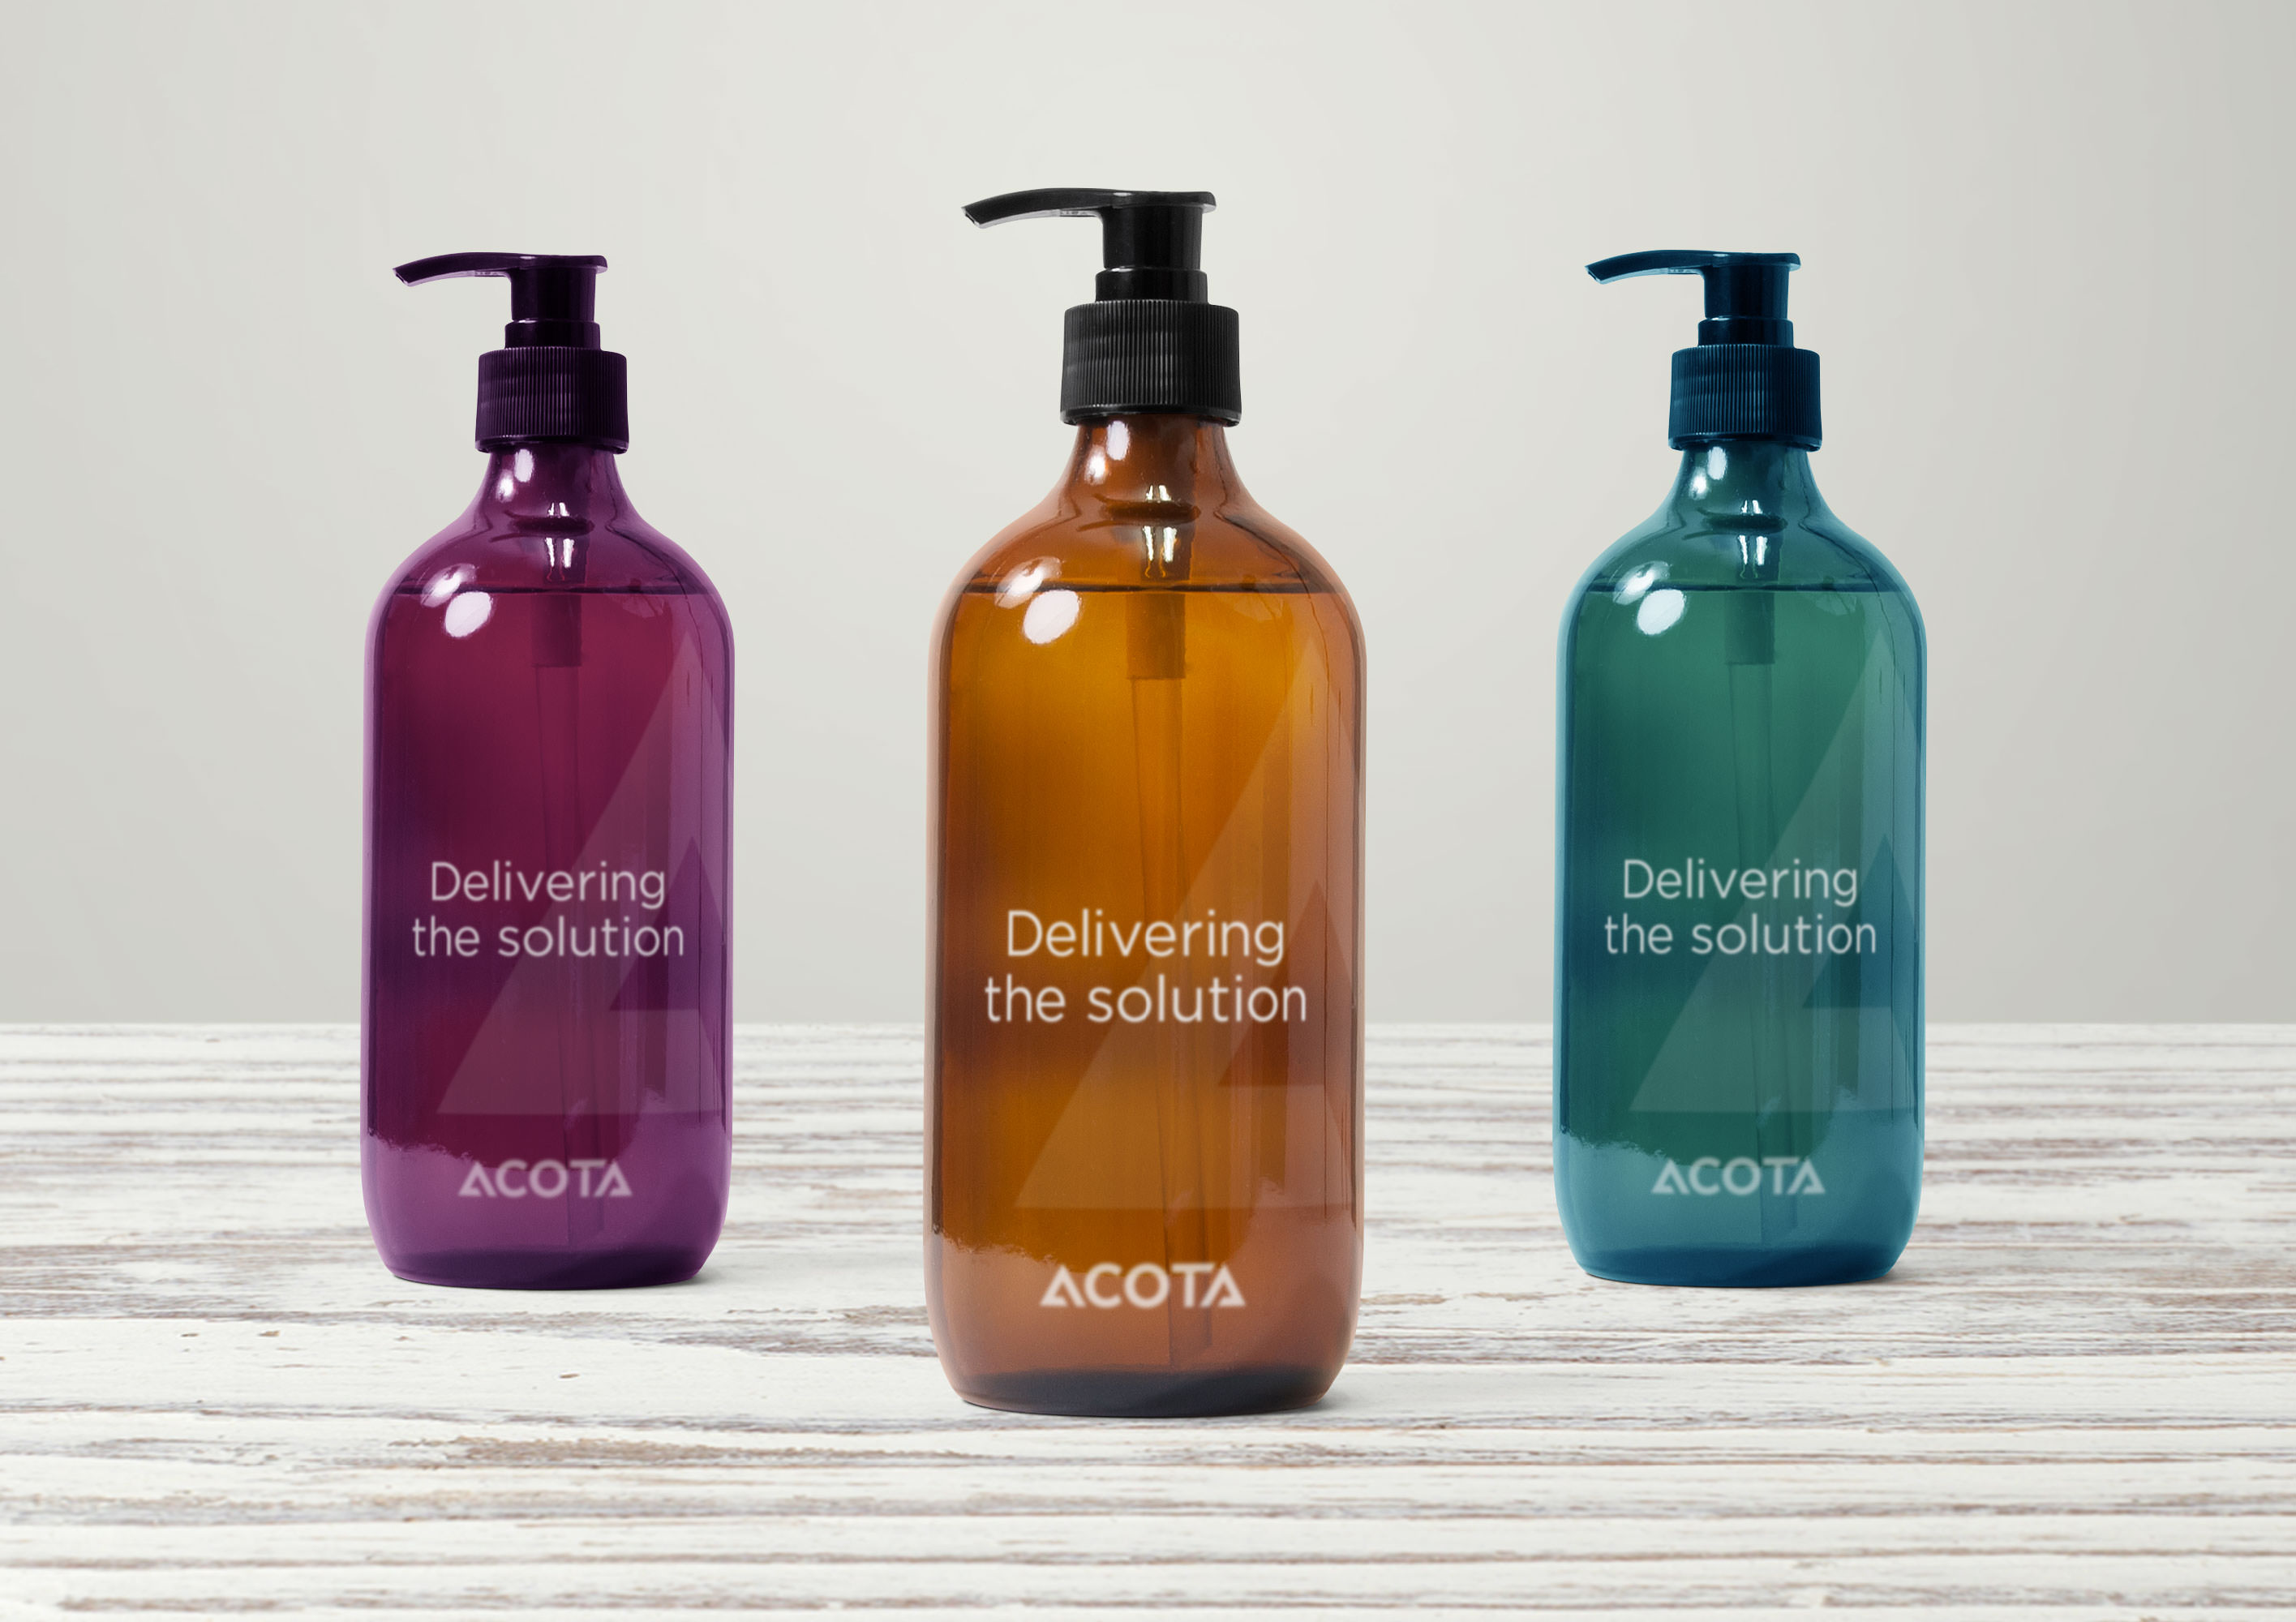 acota-products